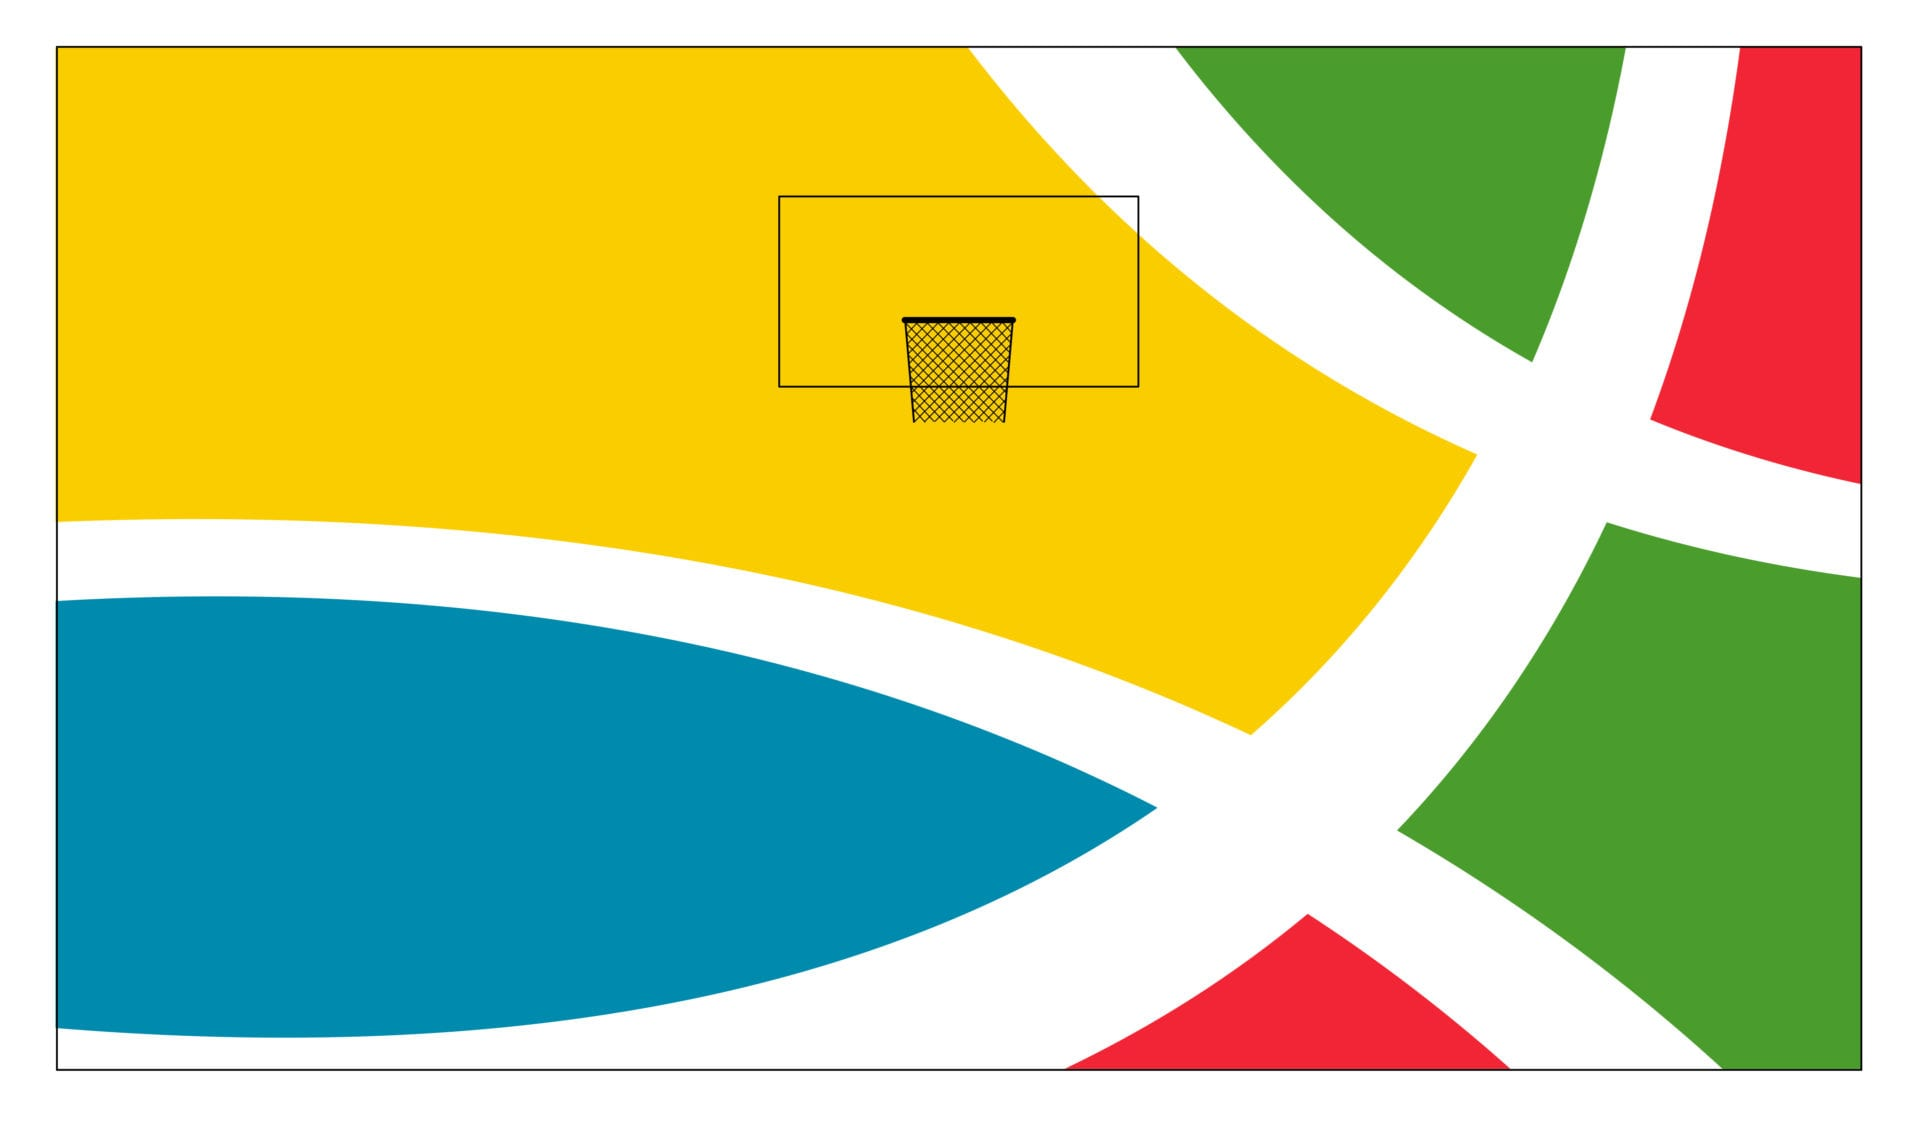 Sports Square basketball hoop concept.